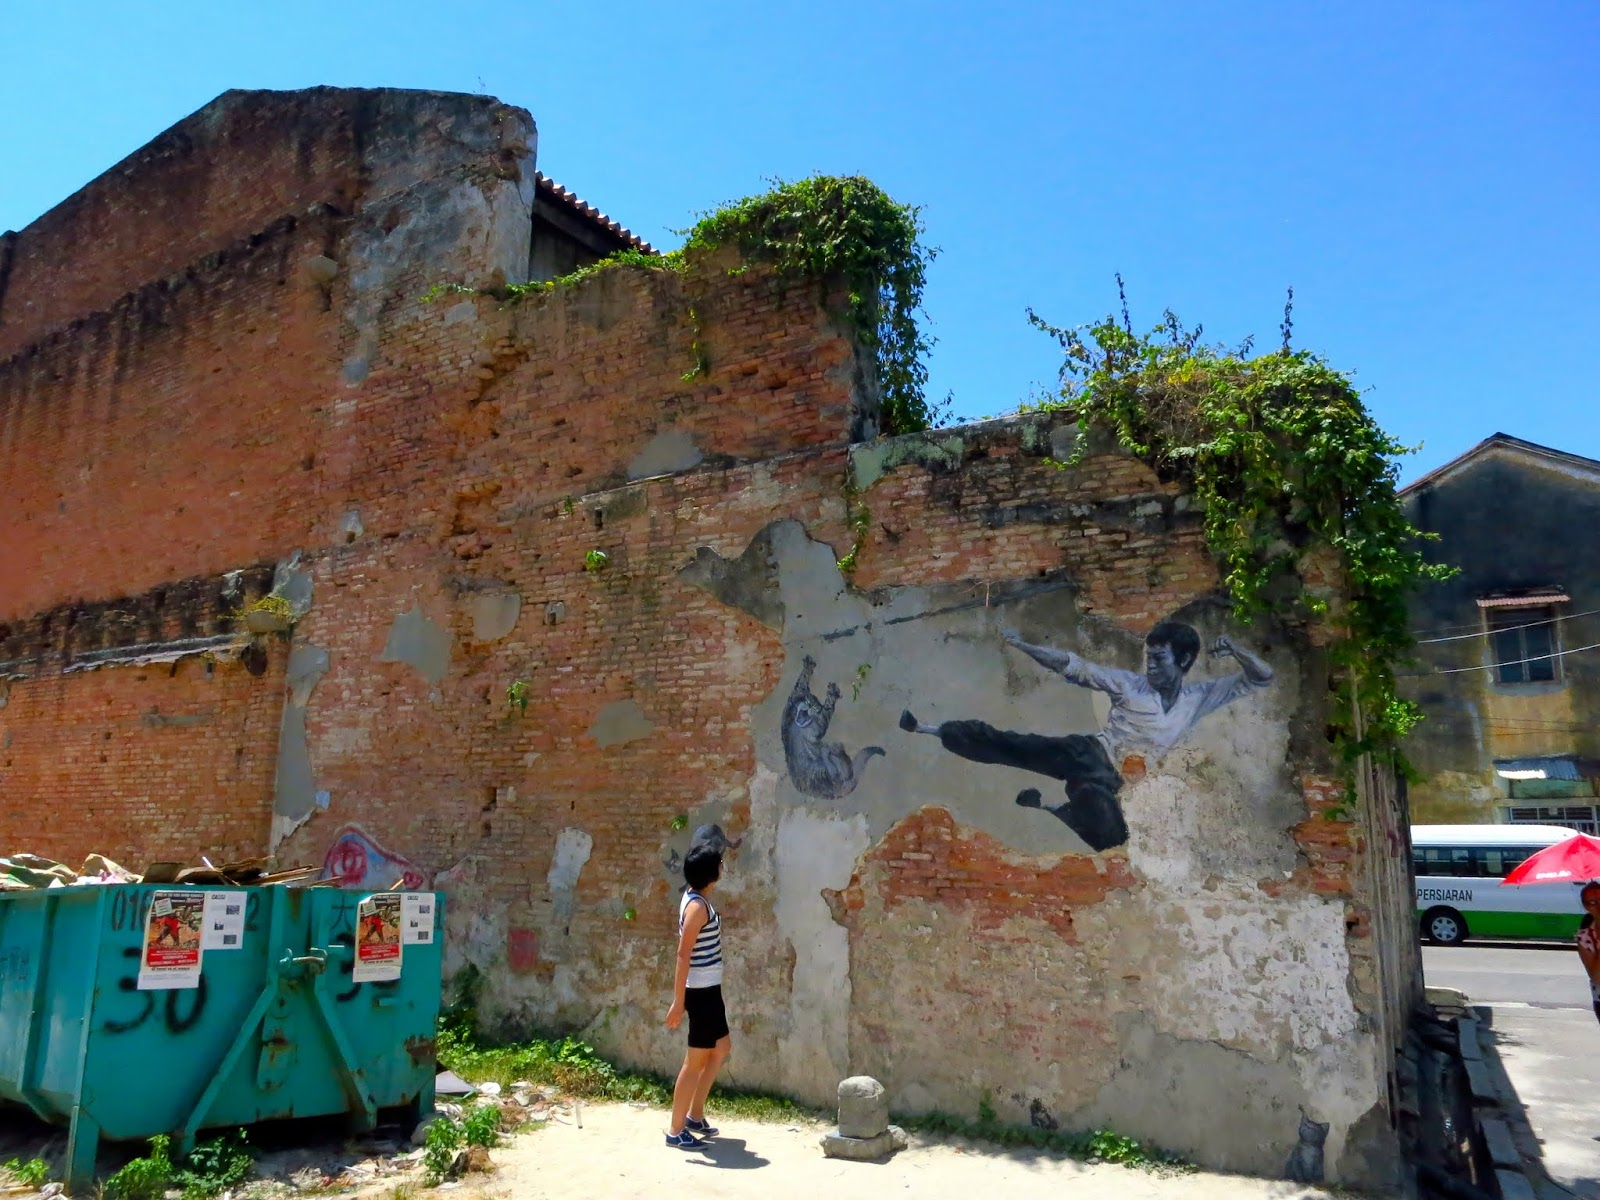 Mural painting in Georgetown, Penang, Malaysia